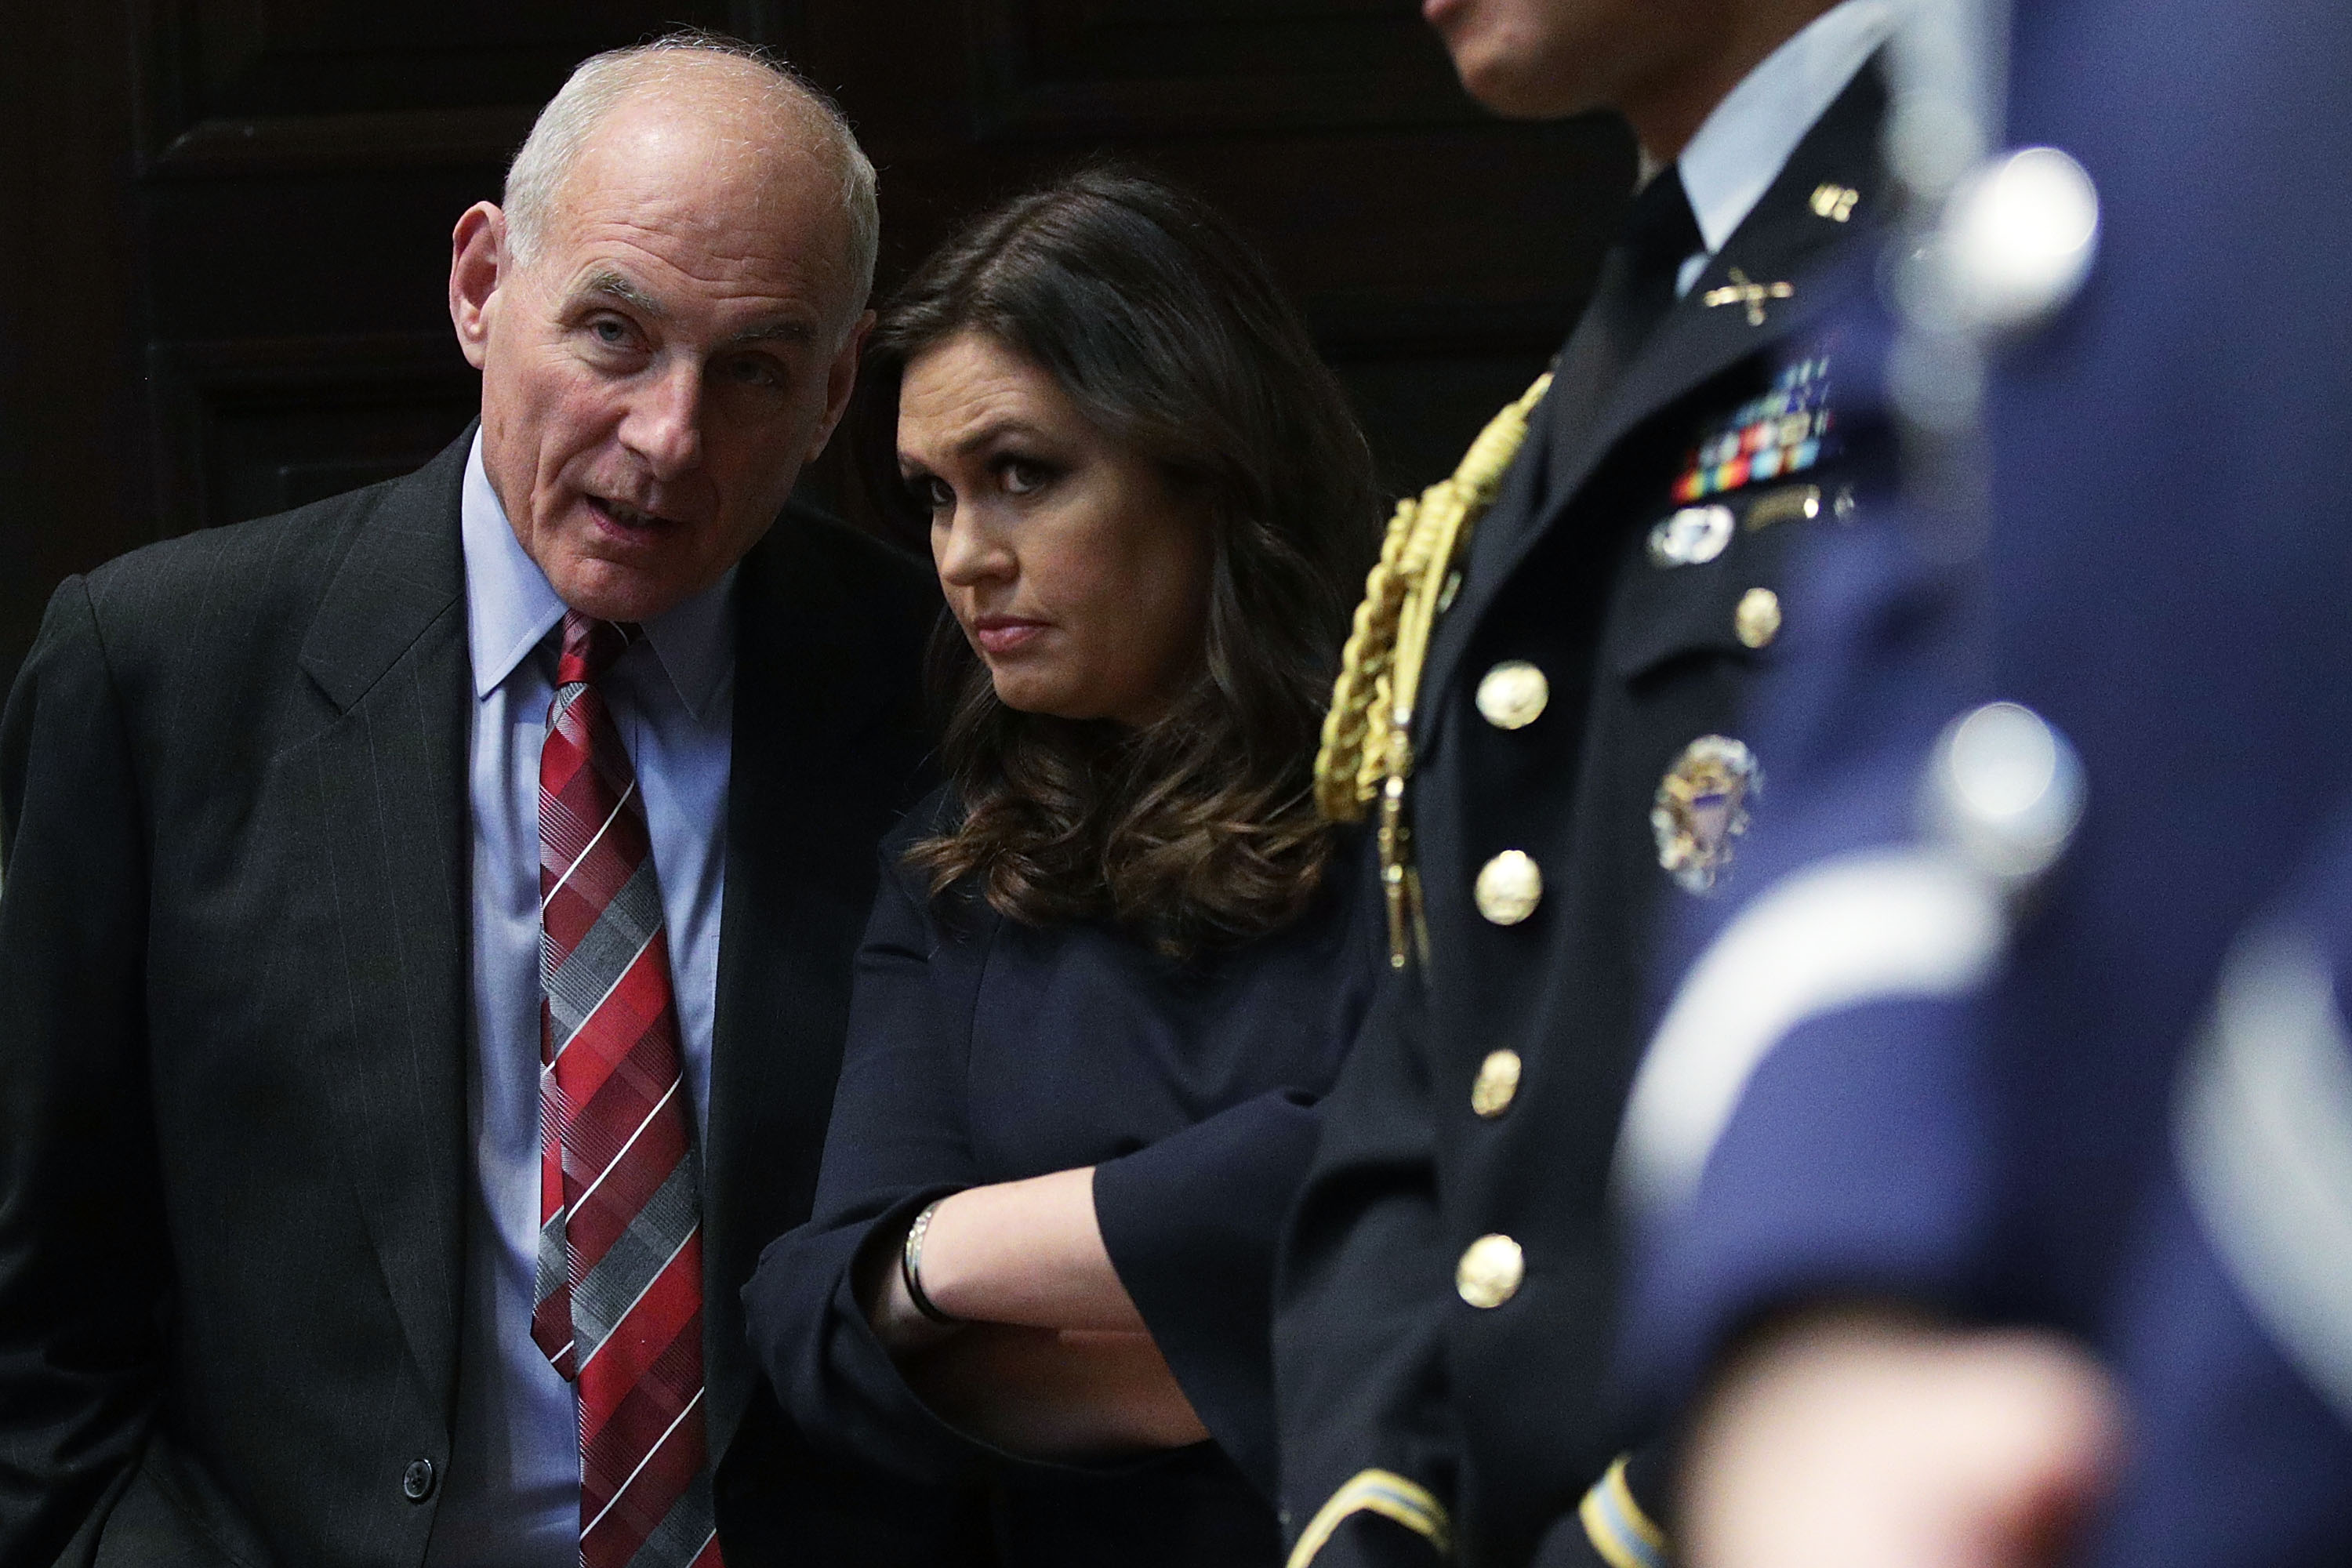 White House chief of staff John Kelly (l.) and White House press secretary Sarah Sanders (r.) are two of the defendants named in the lawsuit.